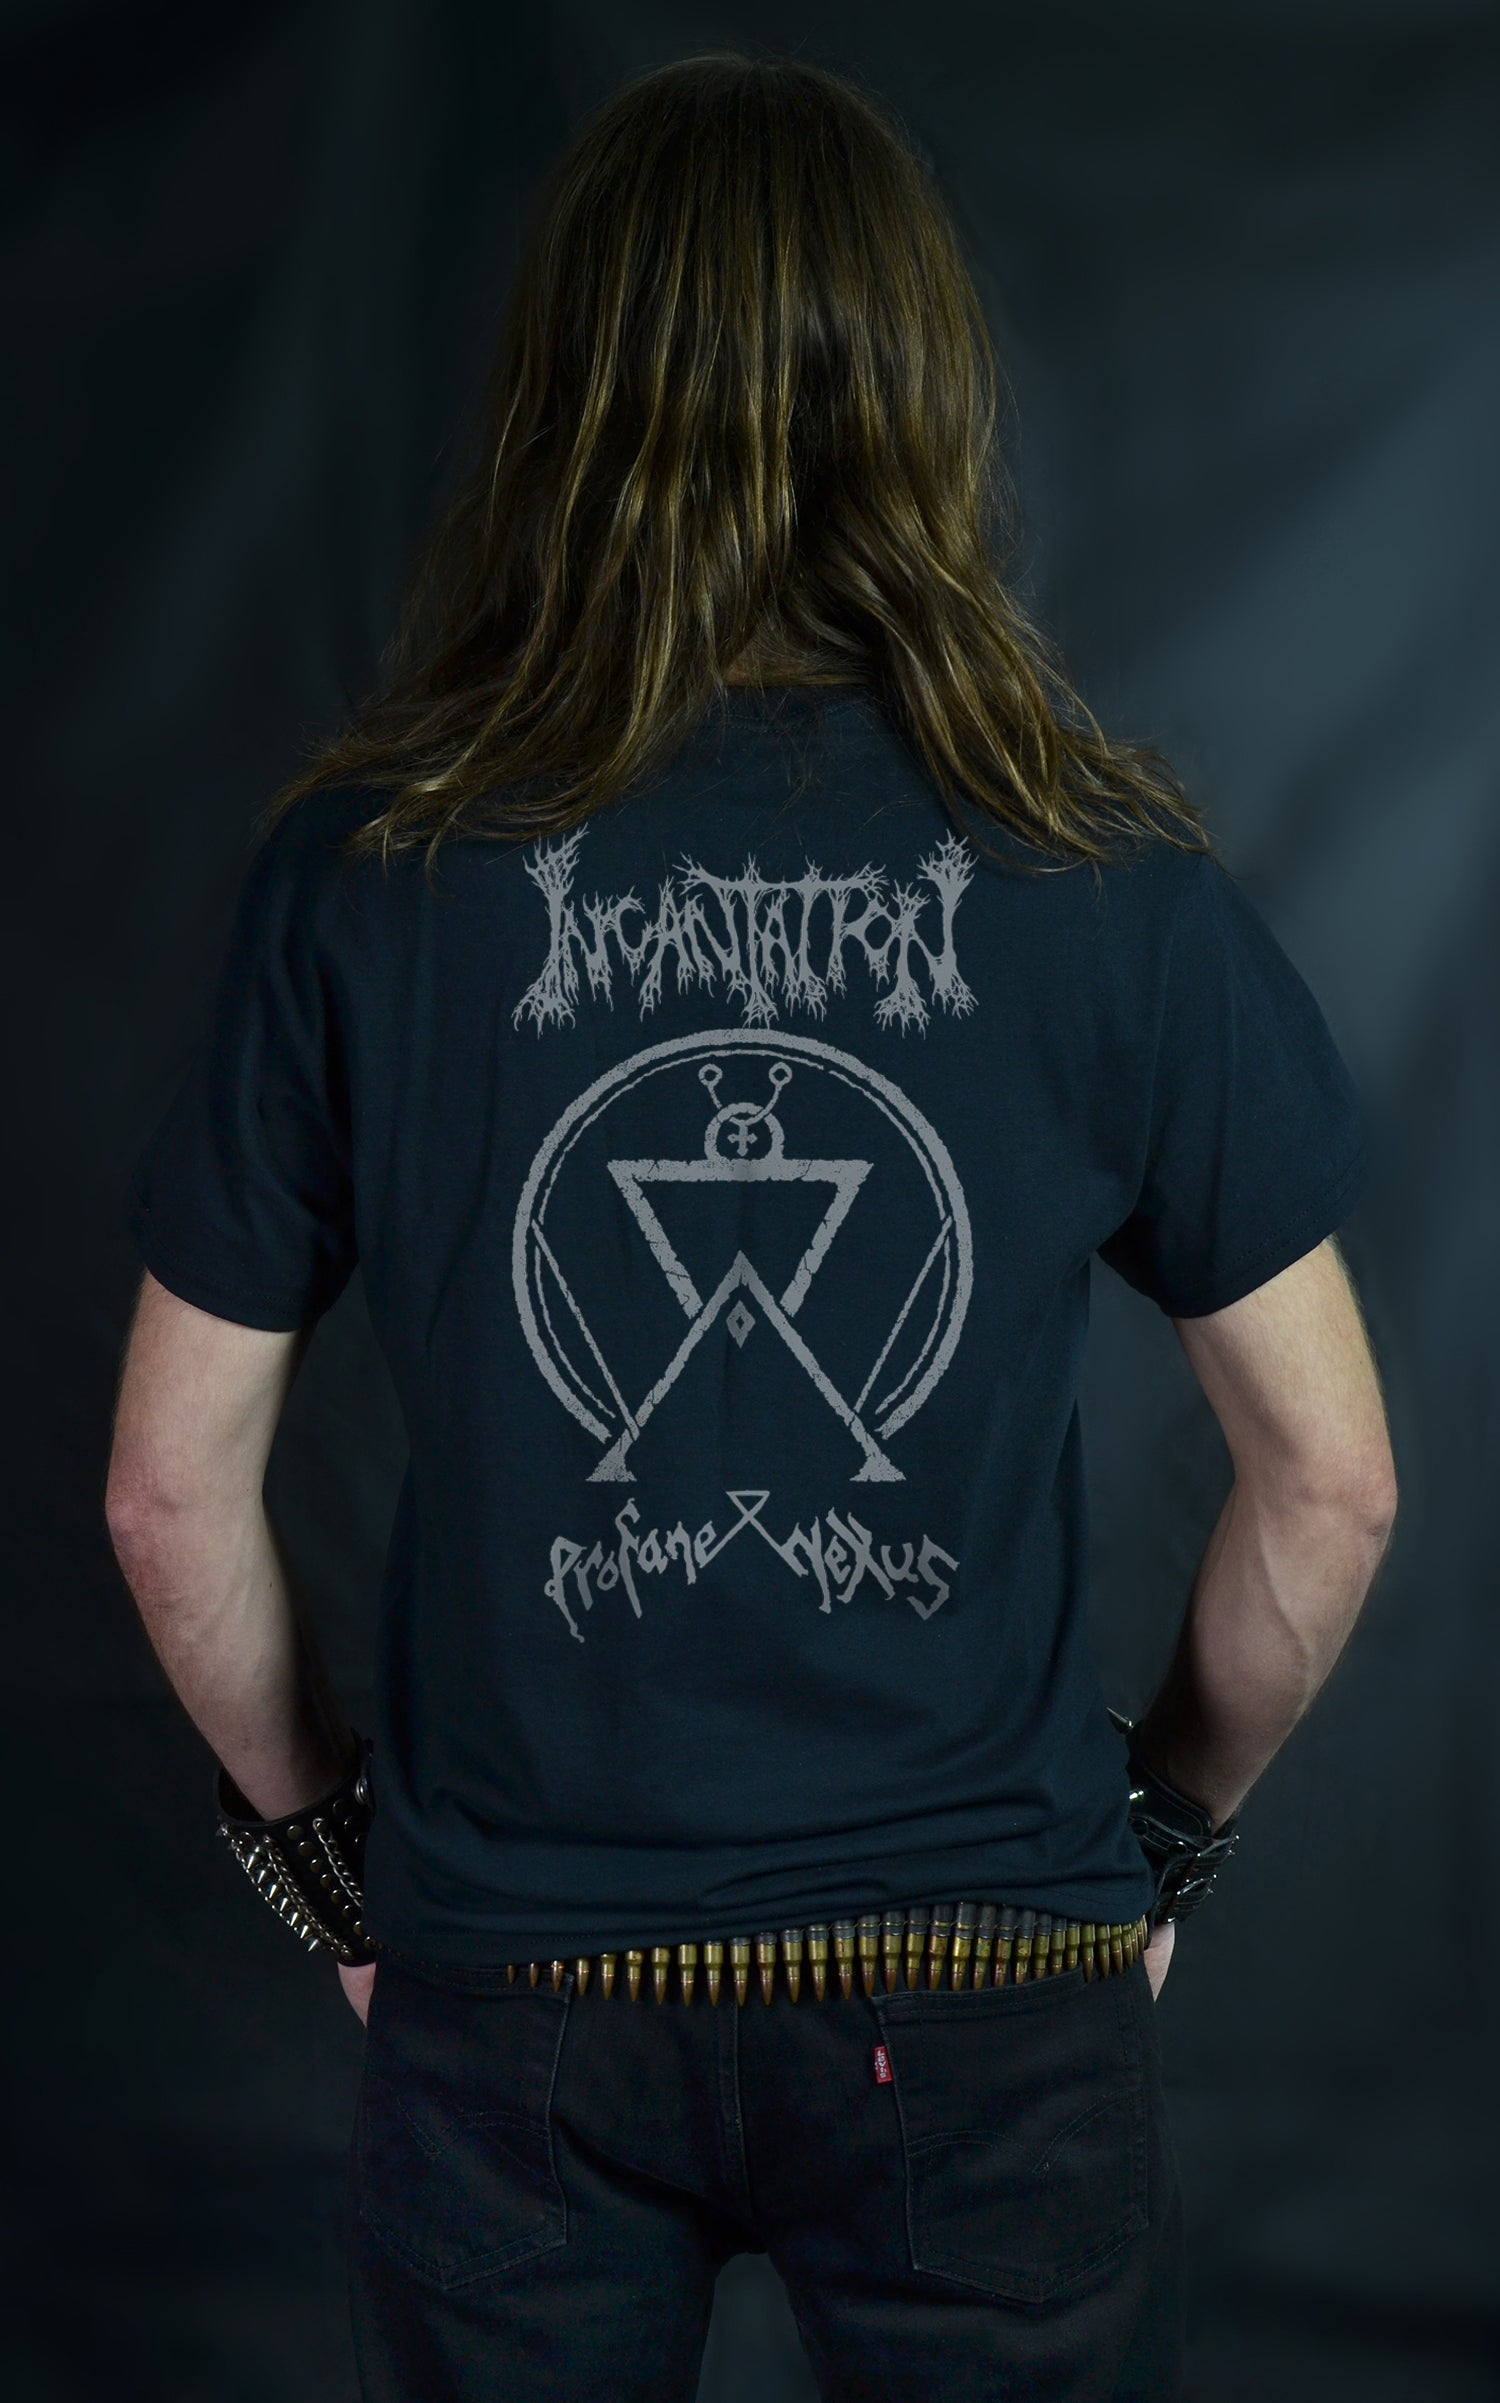 INCANTATION - Profane Nexus (T-SHIRT)